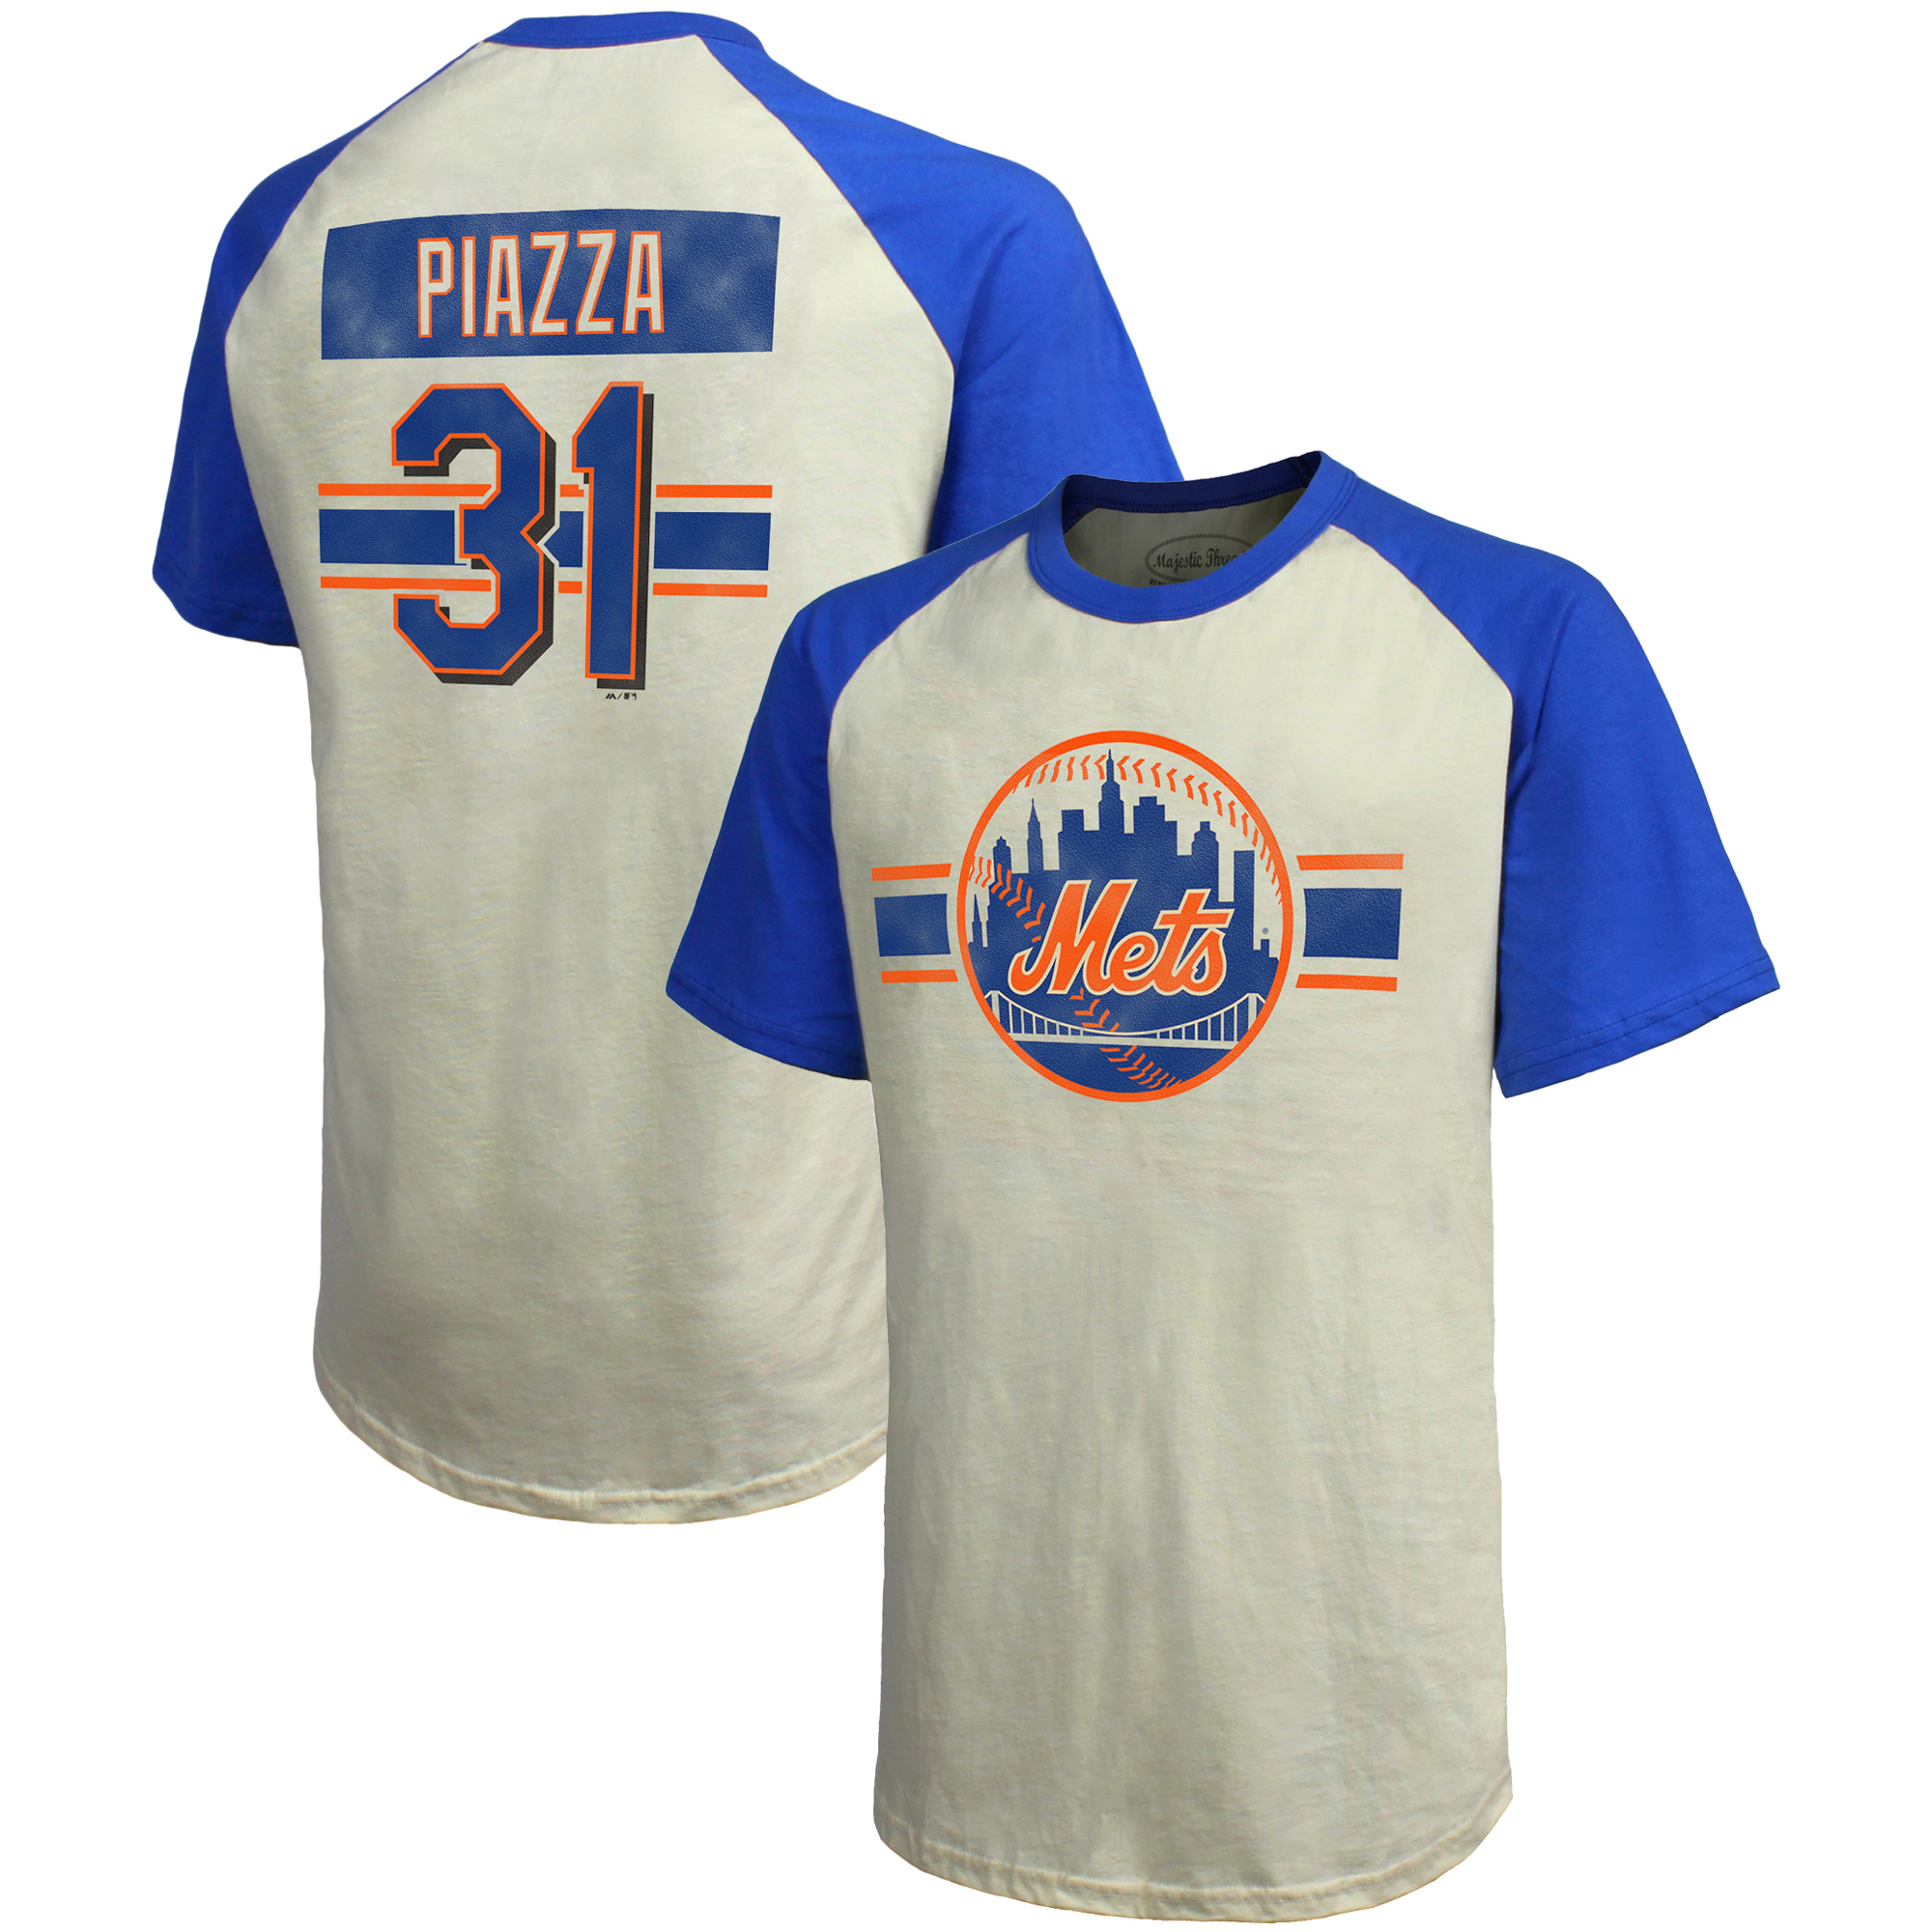 Mike Piazza New York Mets Majestic Threads Cooperstown Collection Hard Hit Player Name & Number Raglan T-Shirt - Cream/Royal